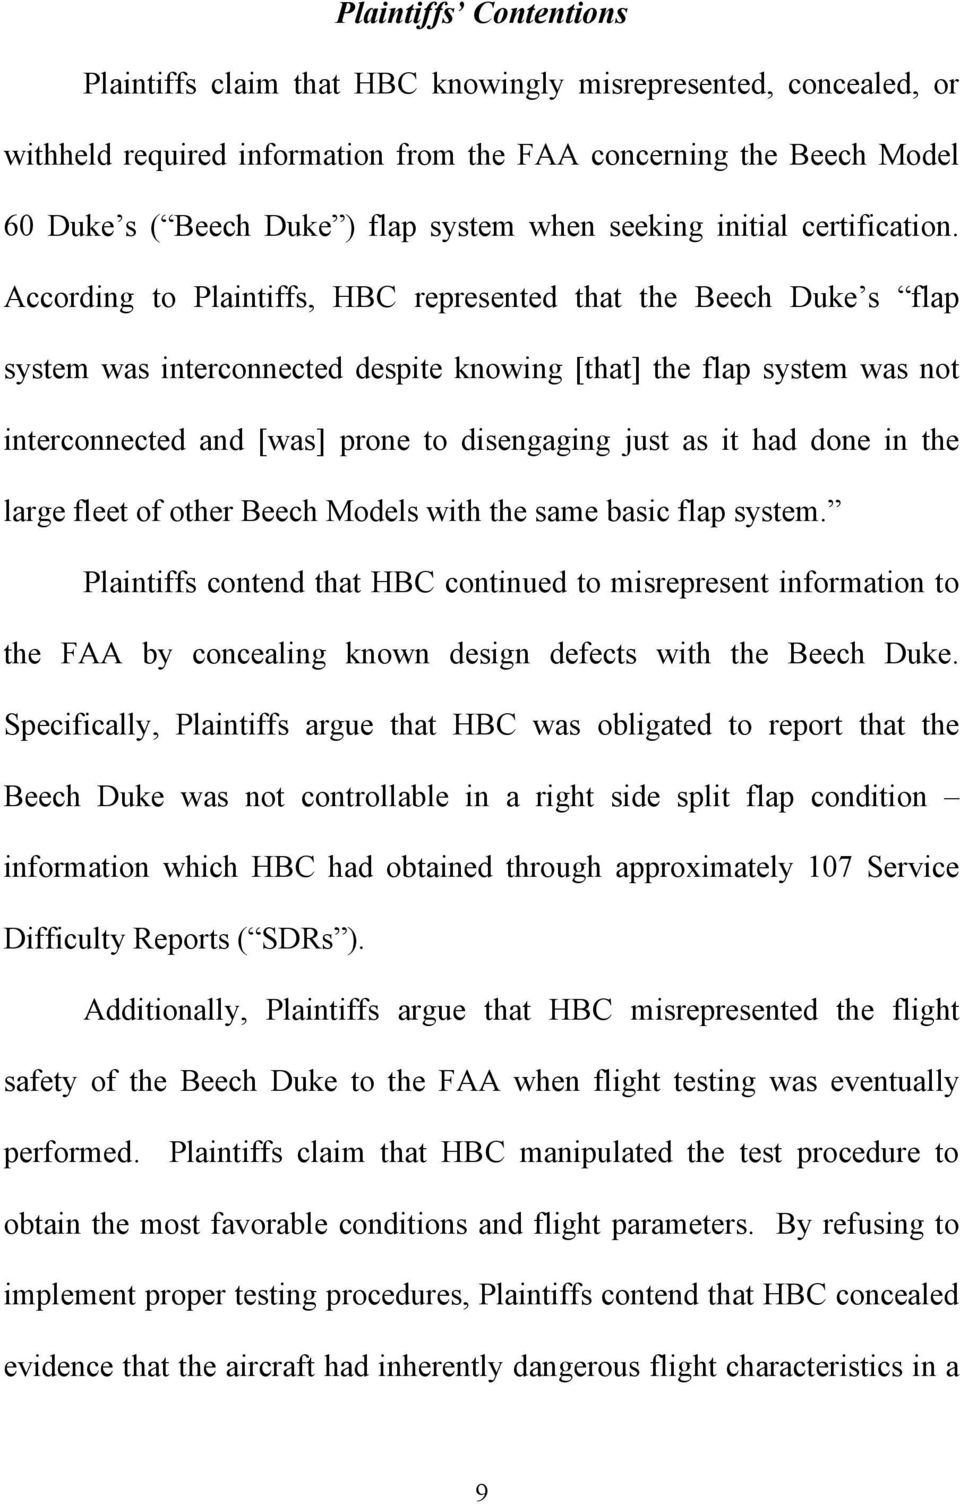 According to Plaintiffs, HBC represented that the Beech Duke s flap system was interconnected despite knowing [that] the flap system was not interconnected and [was] prone to disengaging just as it